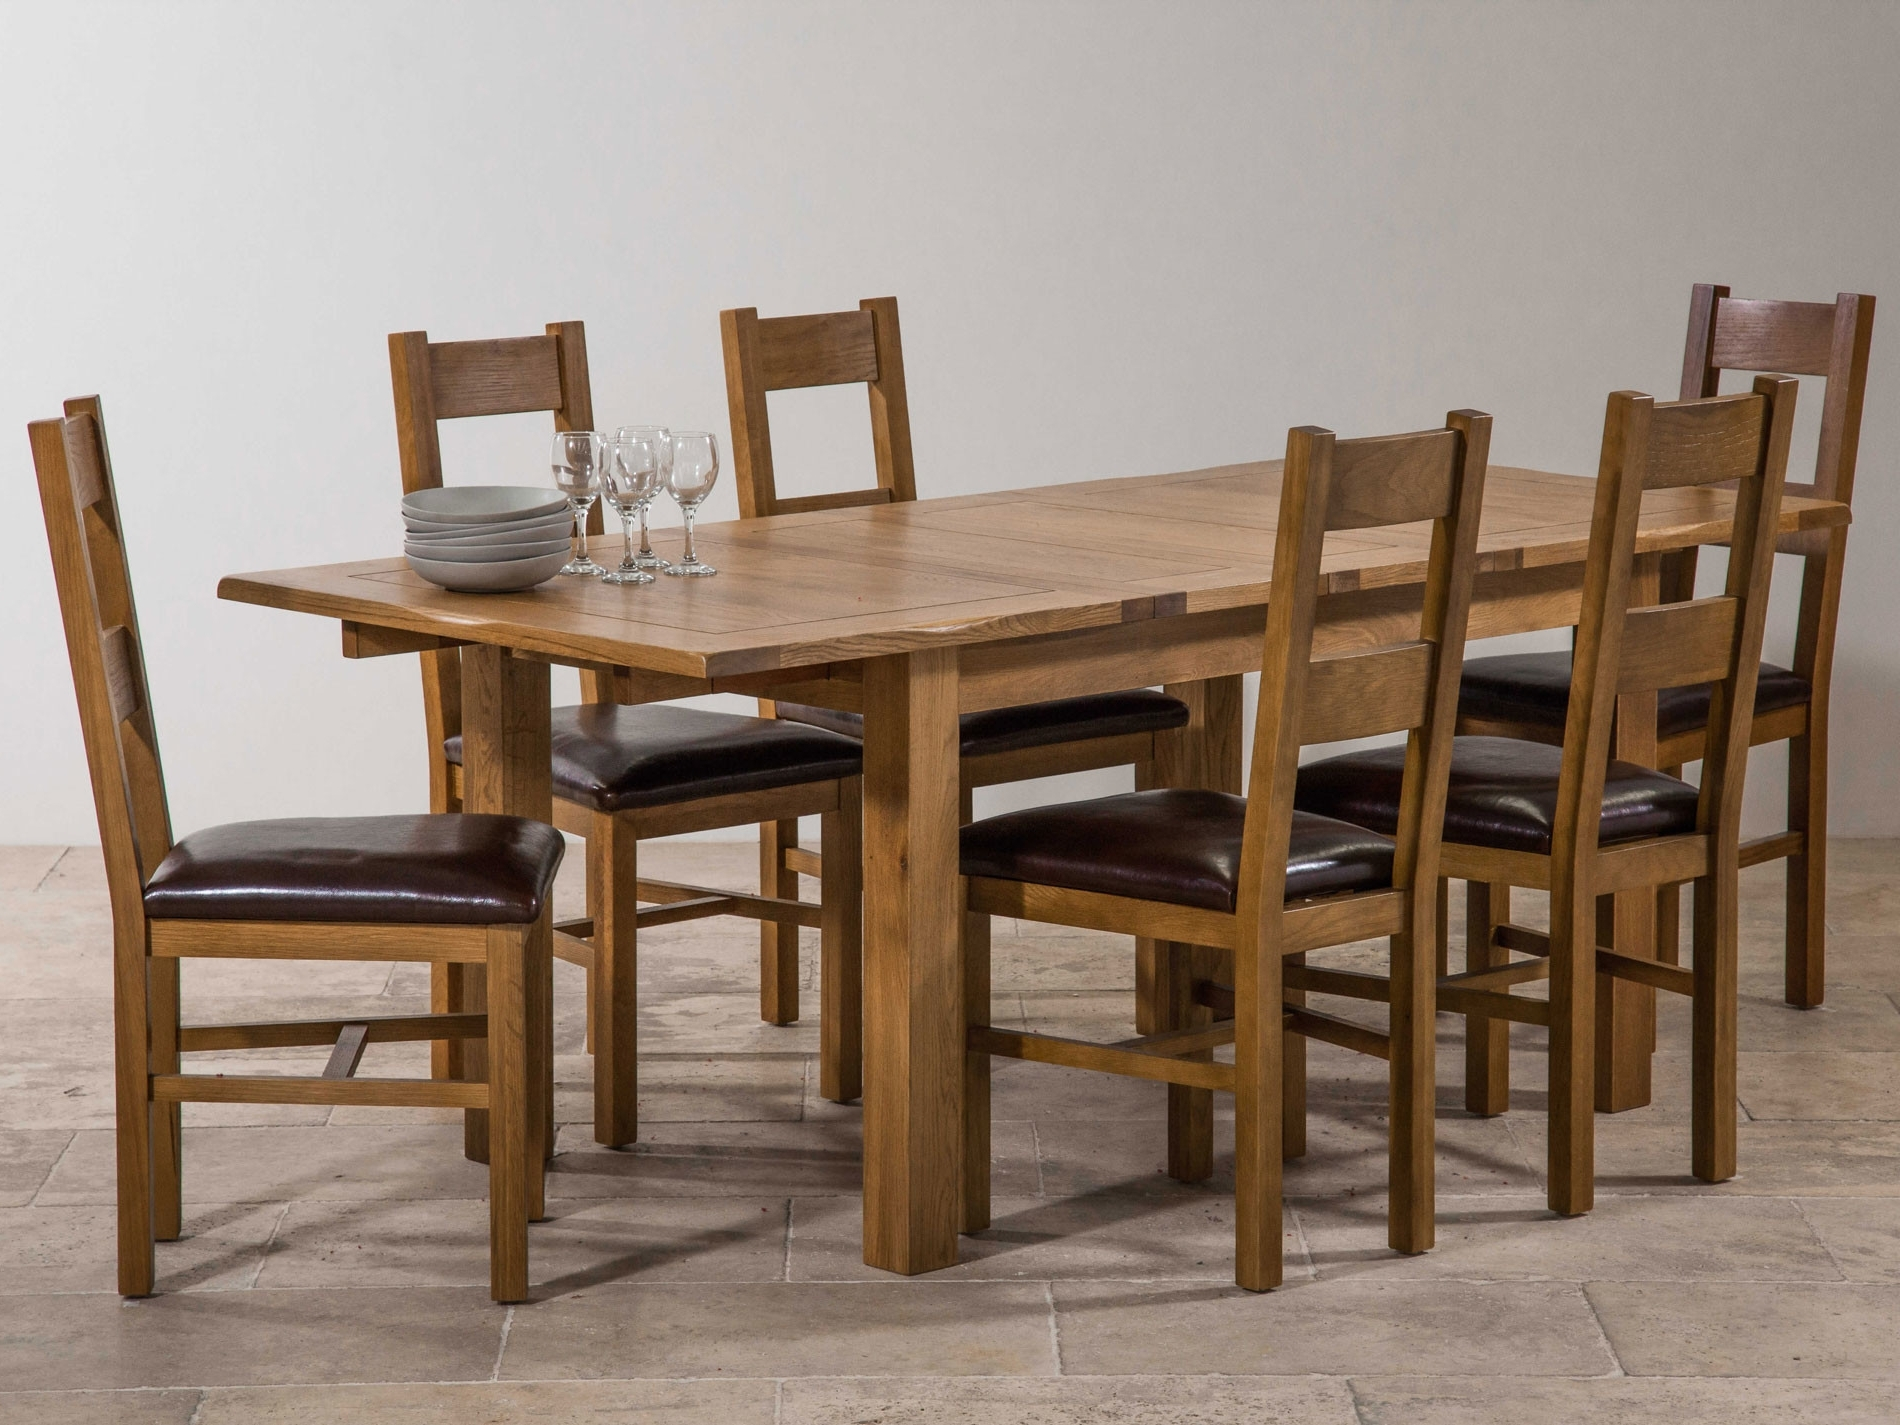 Widely Used Enchanting Extendable Dining Table 3Ft Dining Table Sets On White Inside Extendable Dining Table Sets (View 13 of 25)